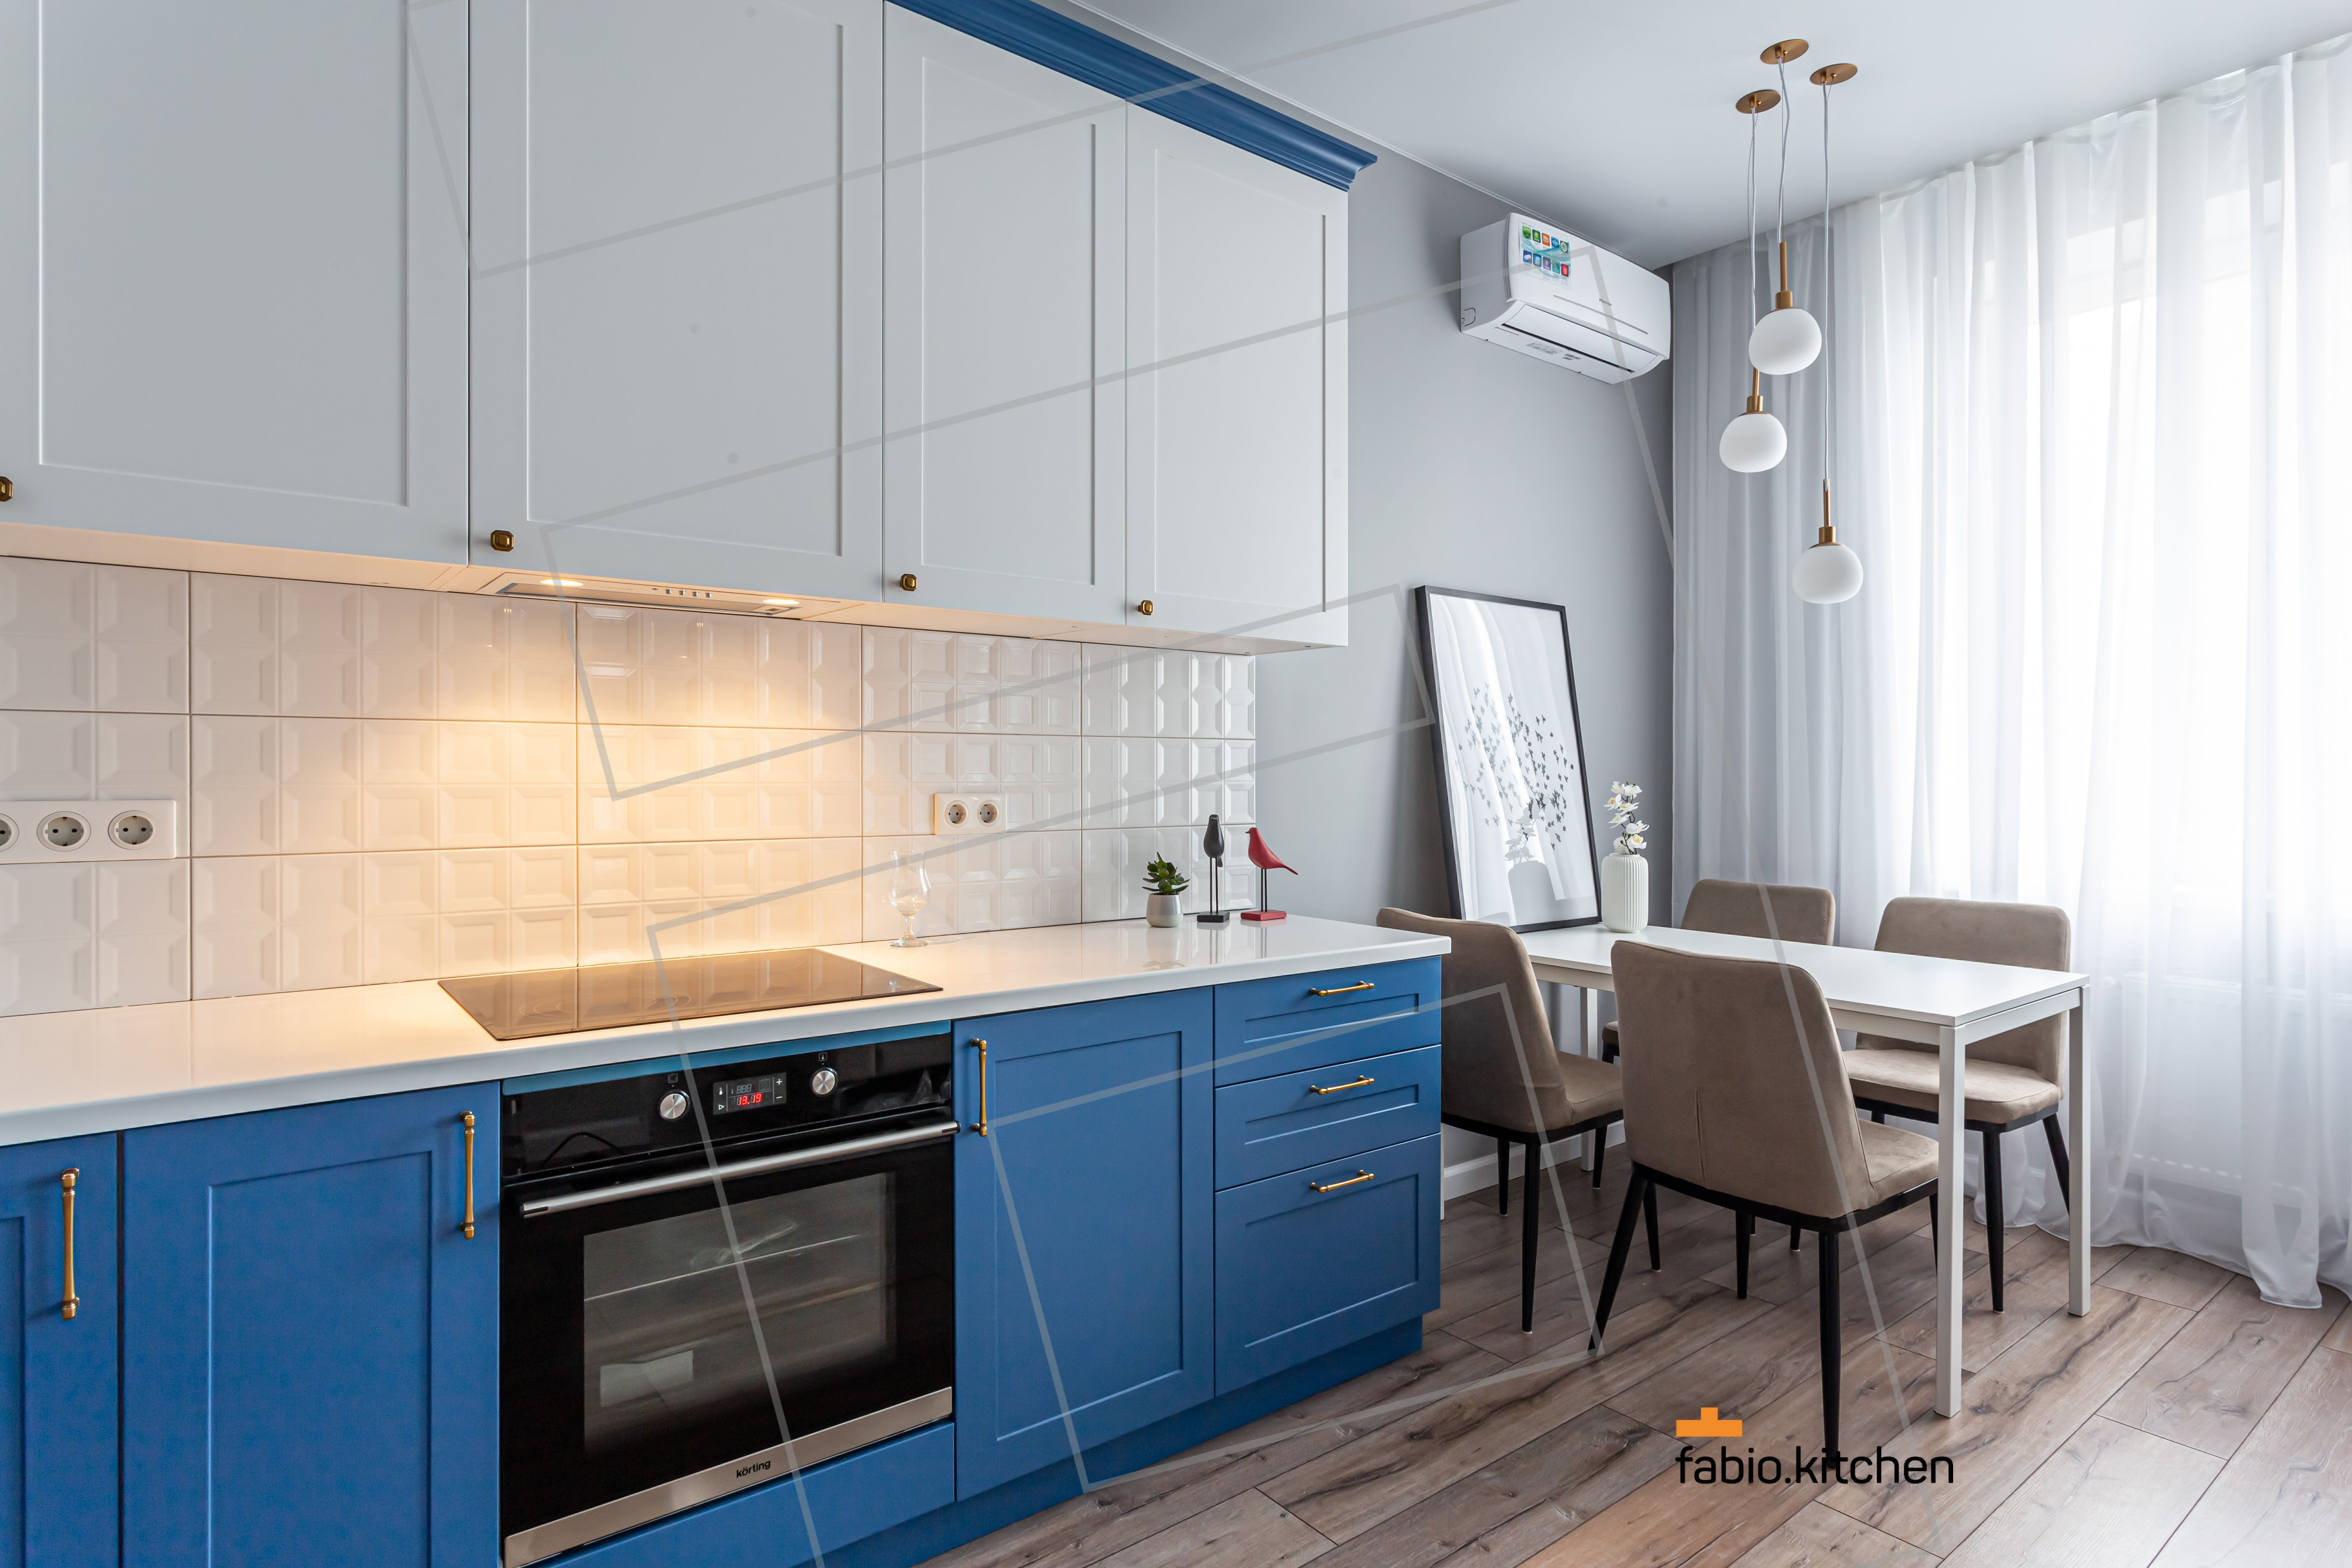 Fabio.Kitchen - Проект Кухни №323 new Фото 8